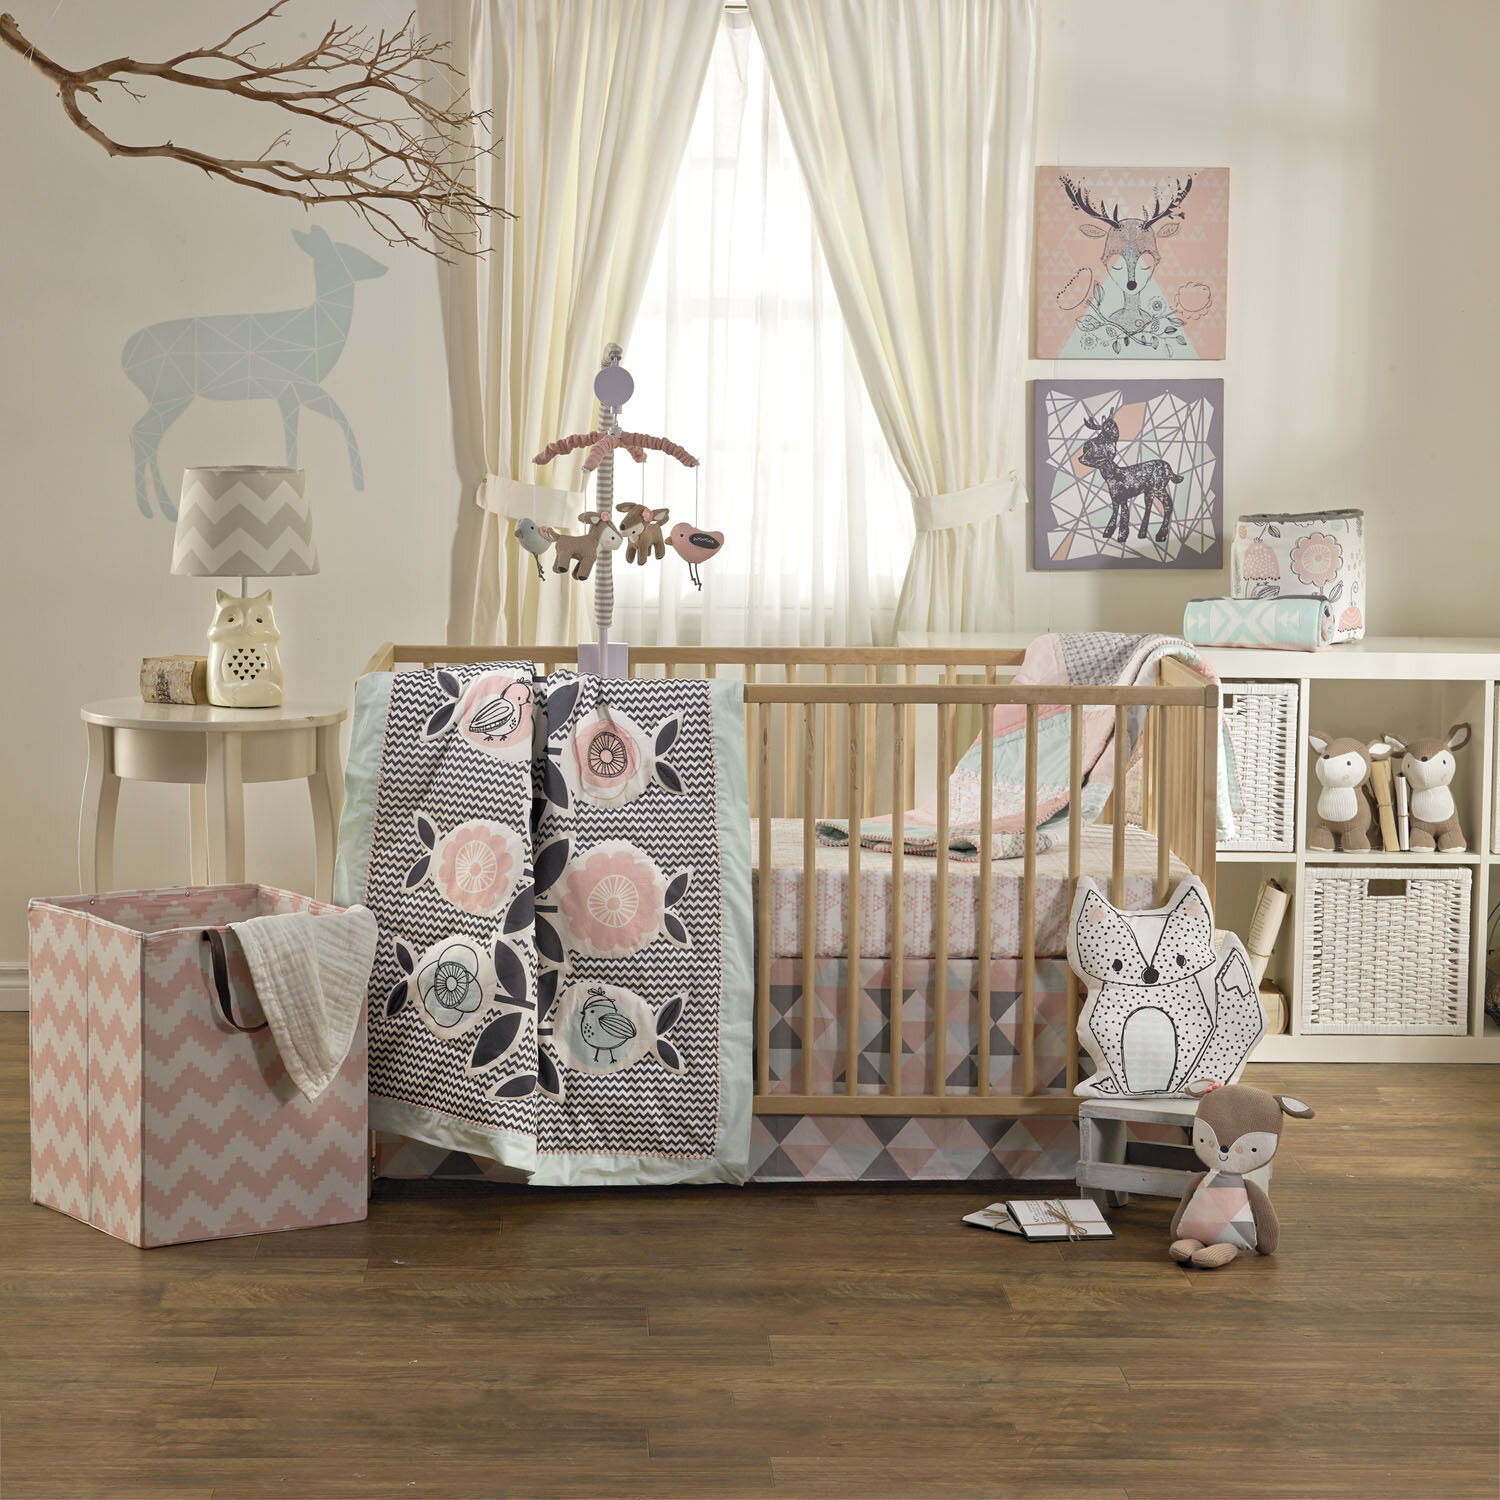 children cribs crib carousel s blankets giveaway i nook review blanket the designs